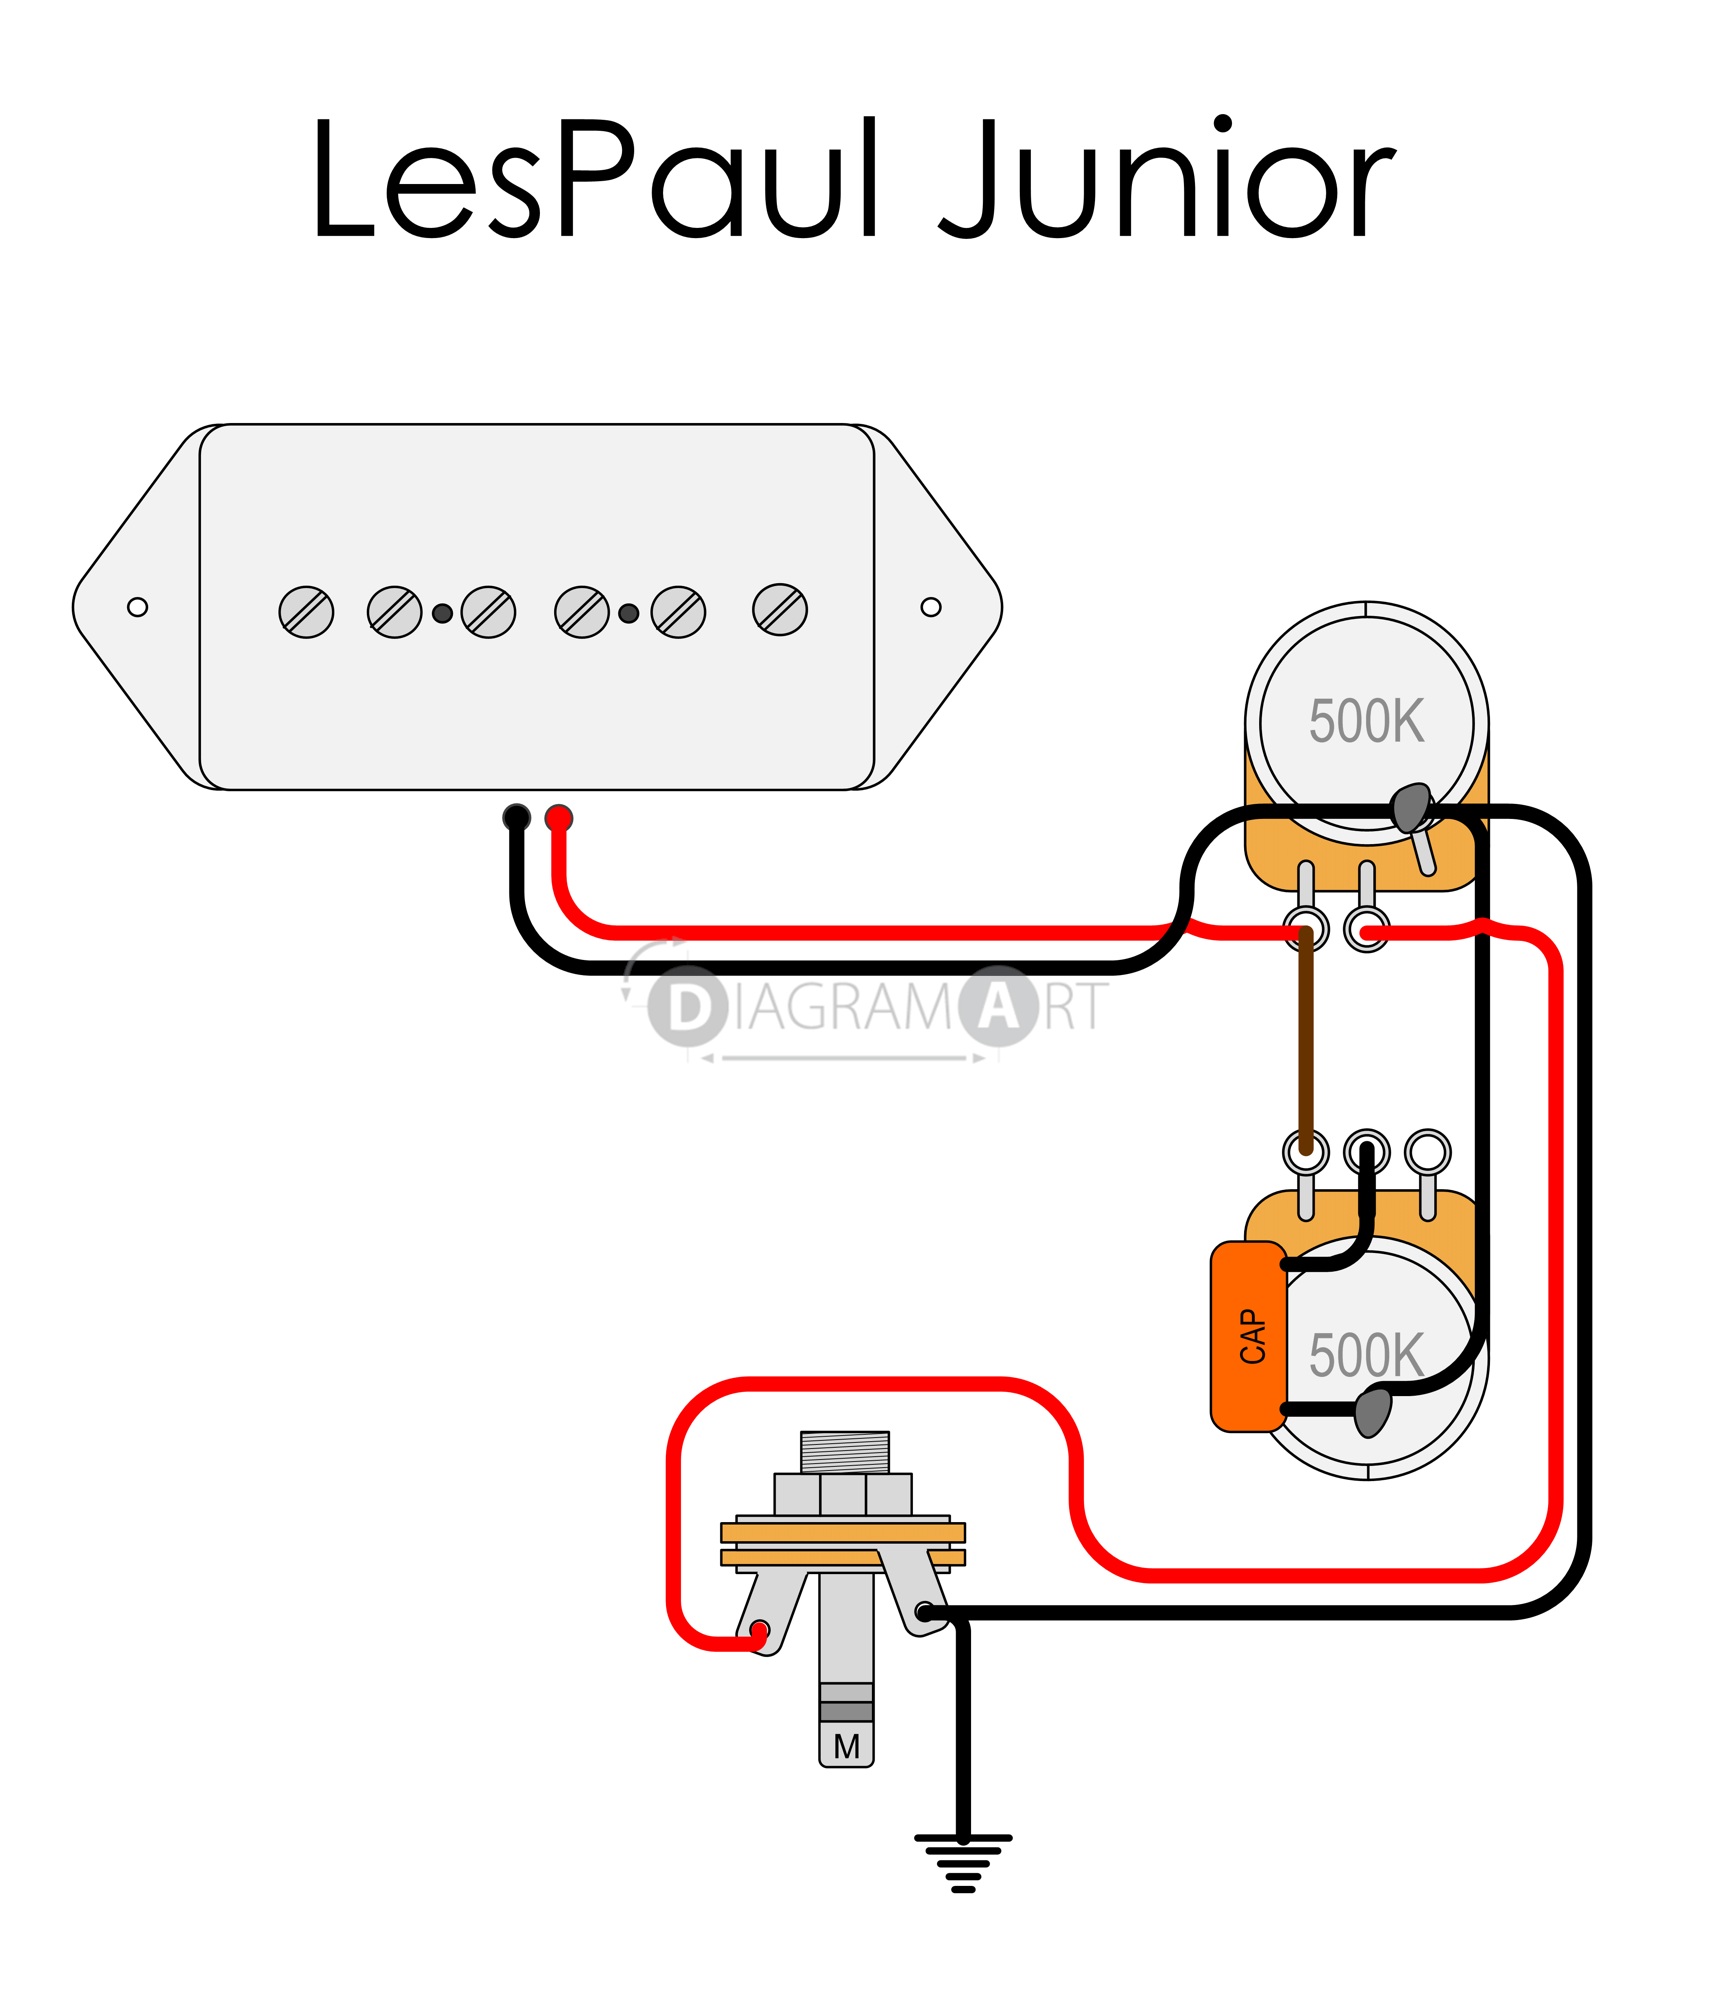 Epiphone les paul wiring schematic jeep gc diesel engine diagrams beautiful epiphone special 2 wiring diagram ideas electrical and download e88dec16 95b6 42d5 b714 58dea4f66451 epiphone pooptronica Gallery